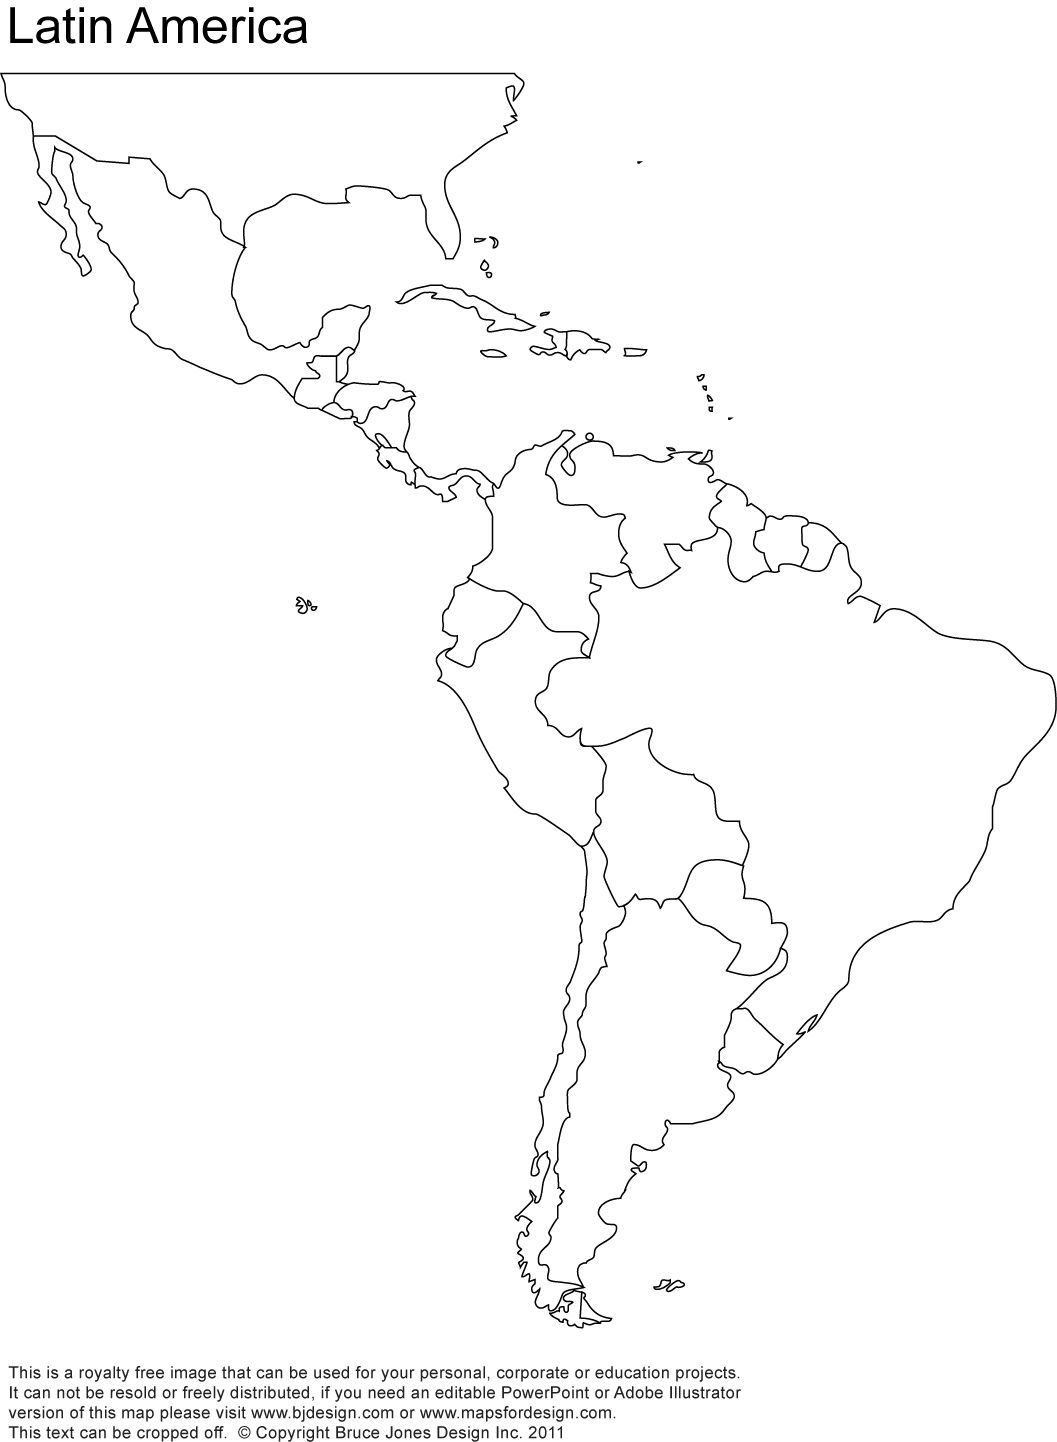 Free South American and Latin American Maps, Printable, Royalty Free ...